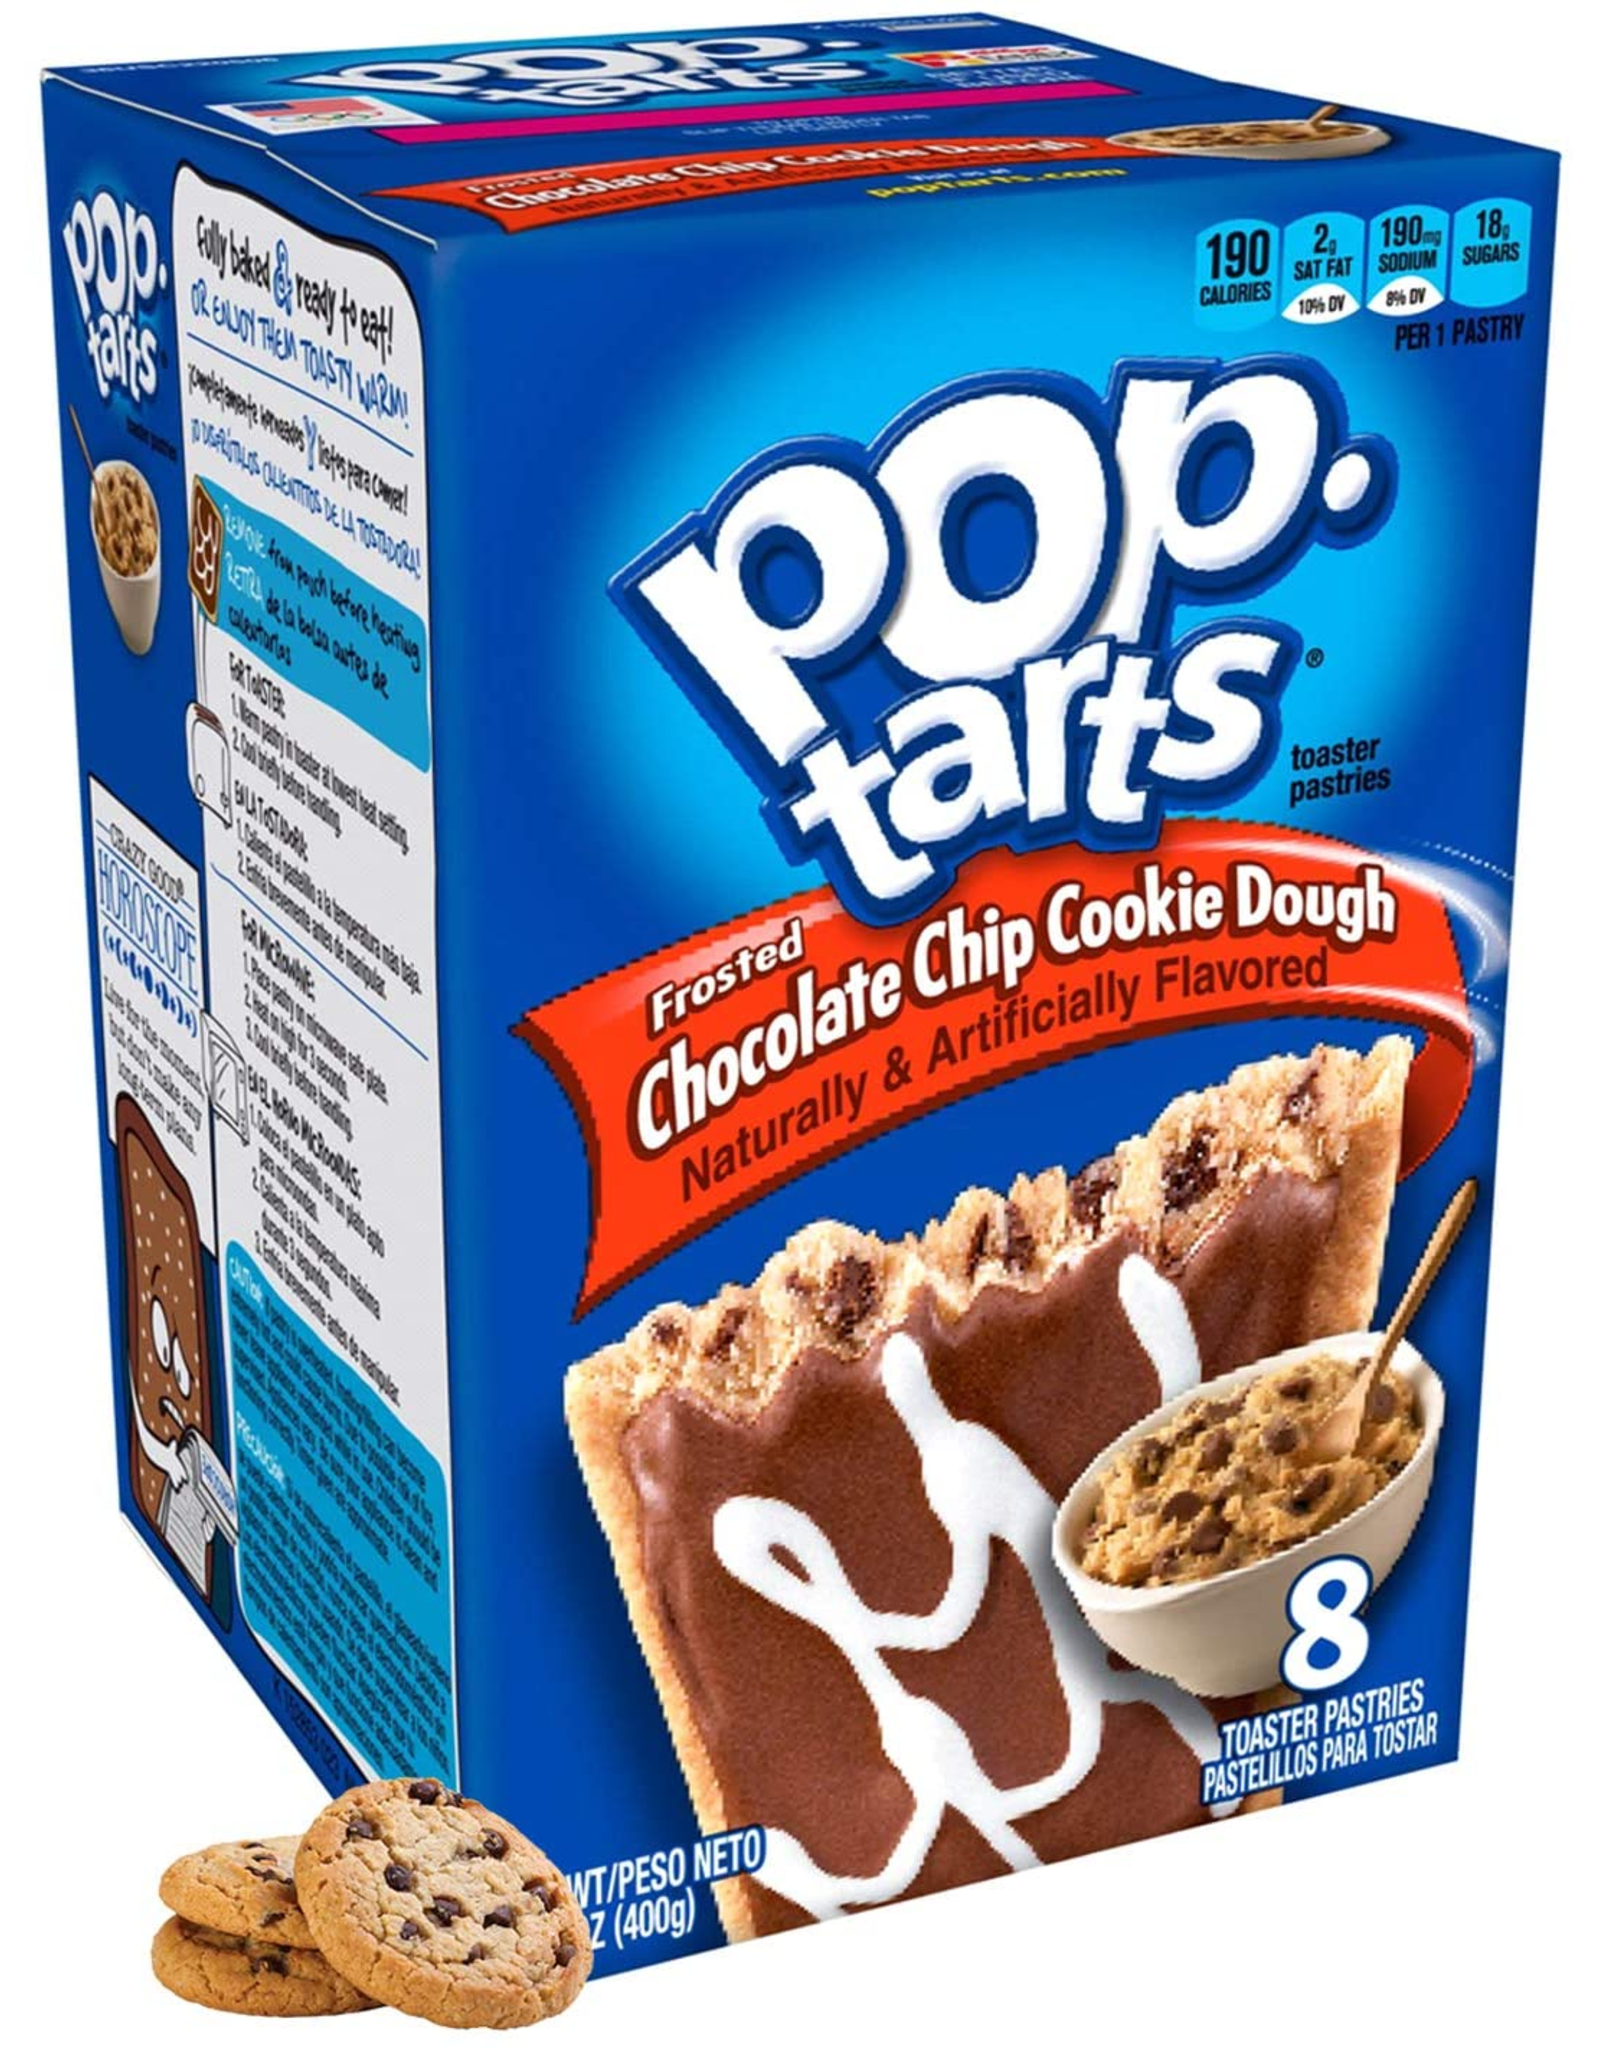 Pop-Tarts Frosted Chocolate Chip Cookie Dough - 8 Pack